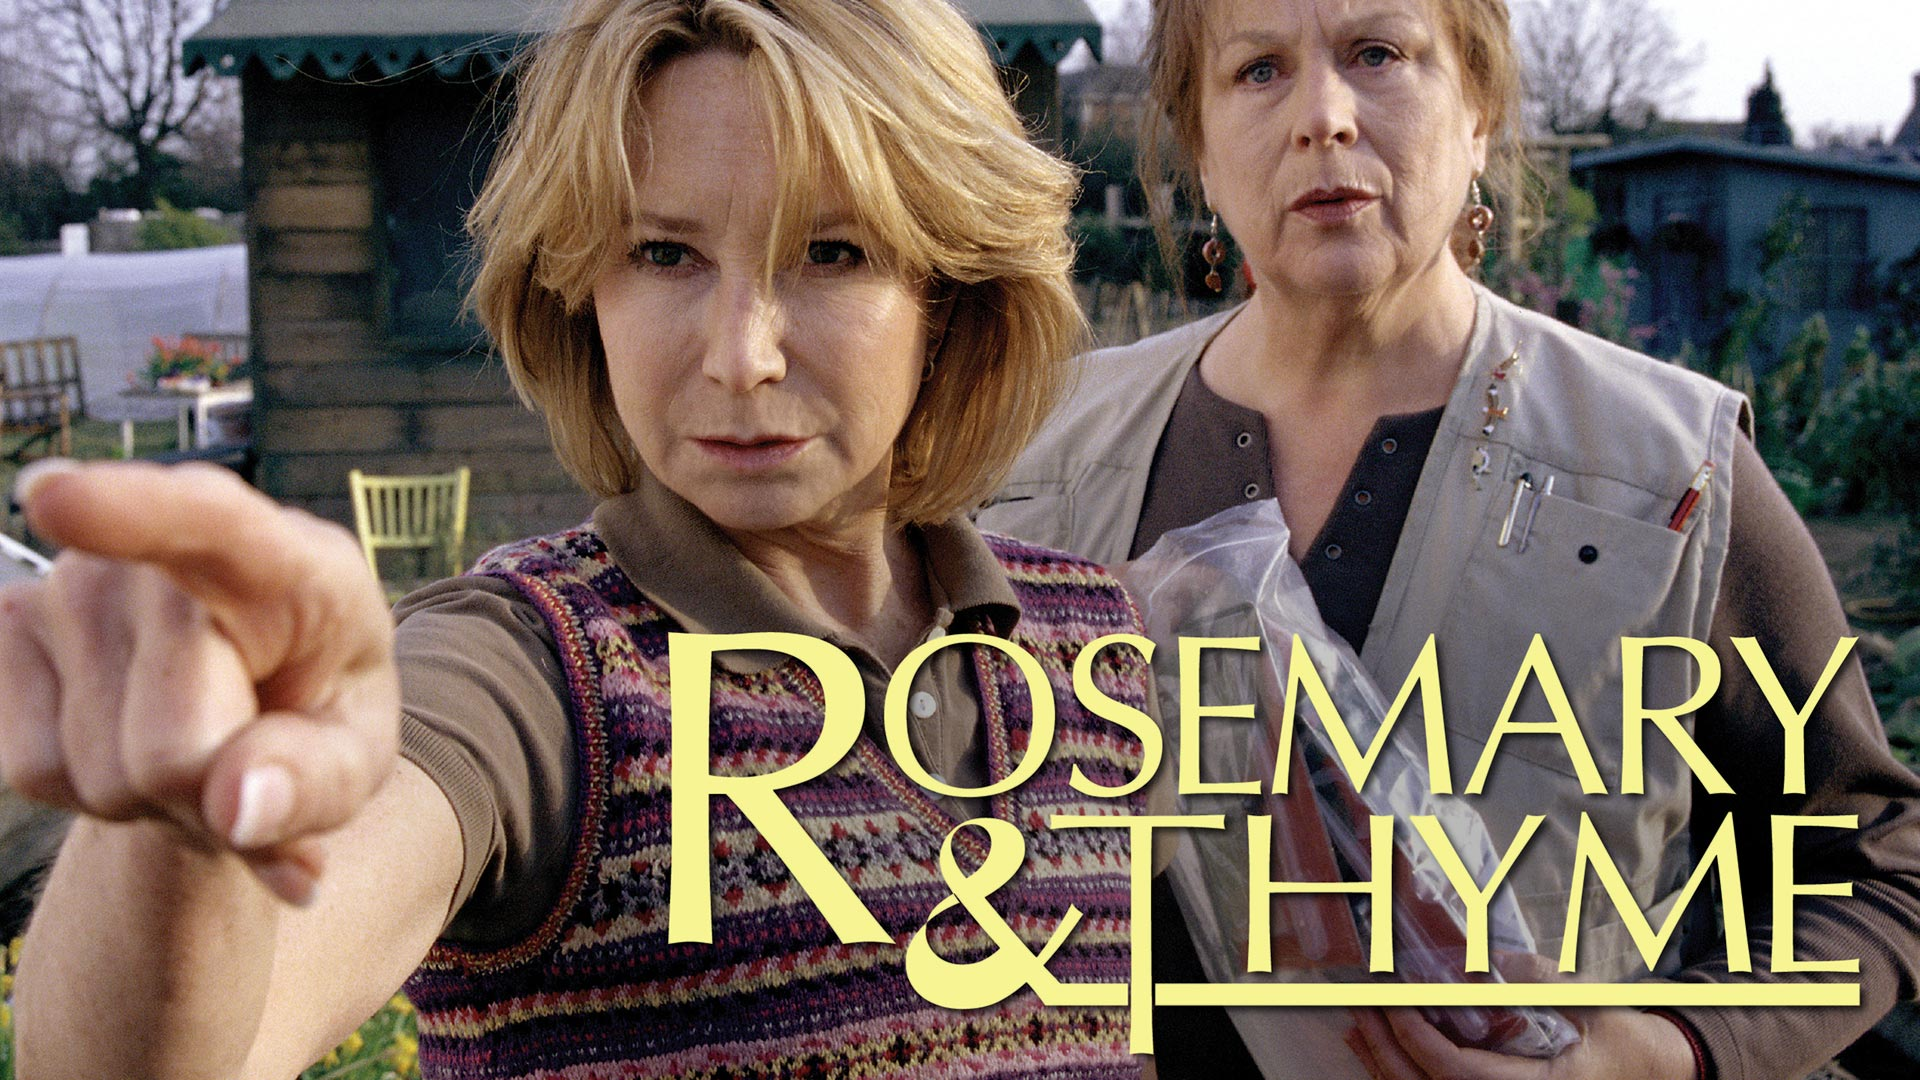 Rosemary And Thyme, Season 1